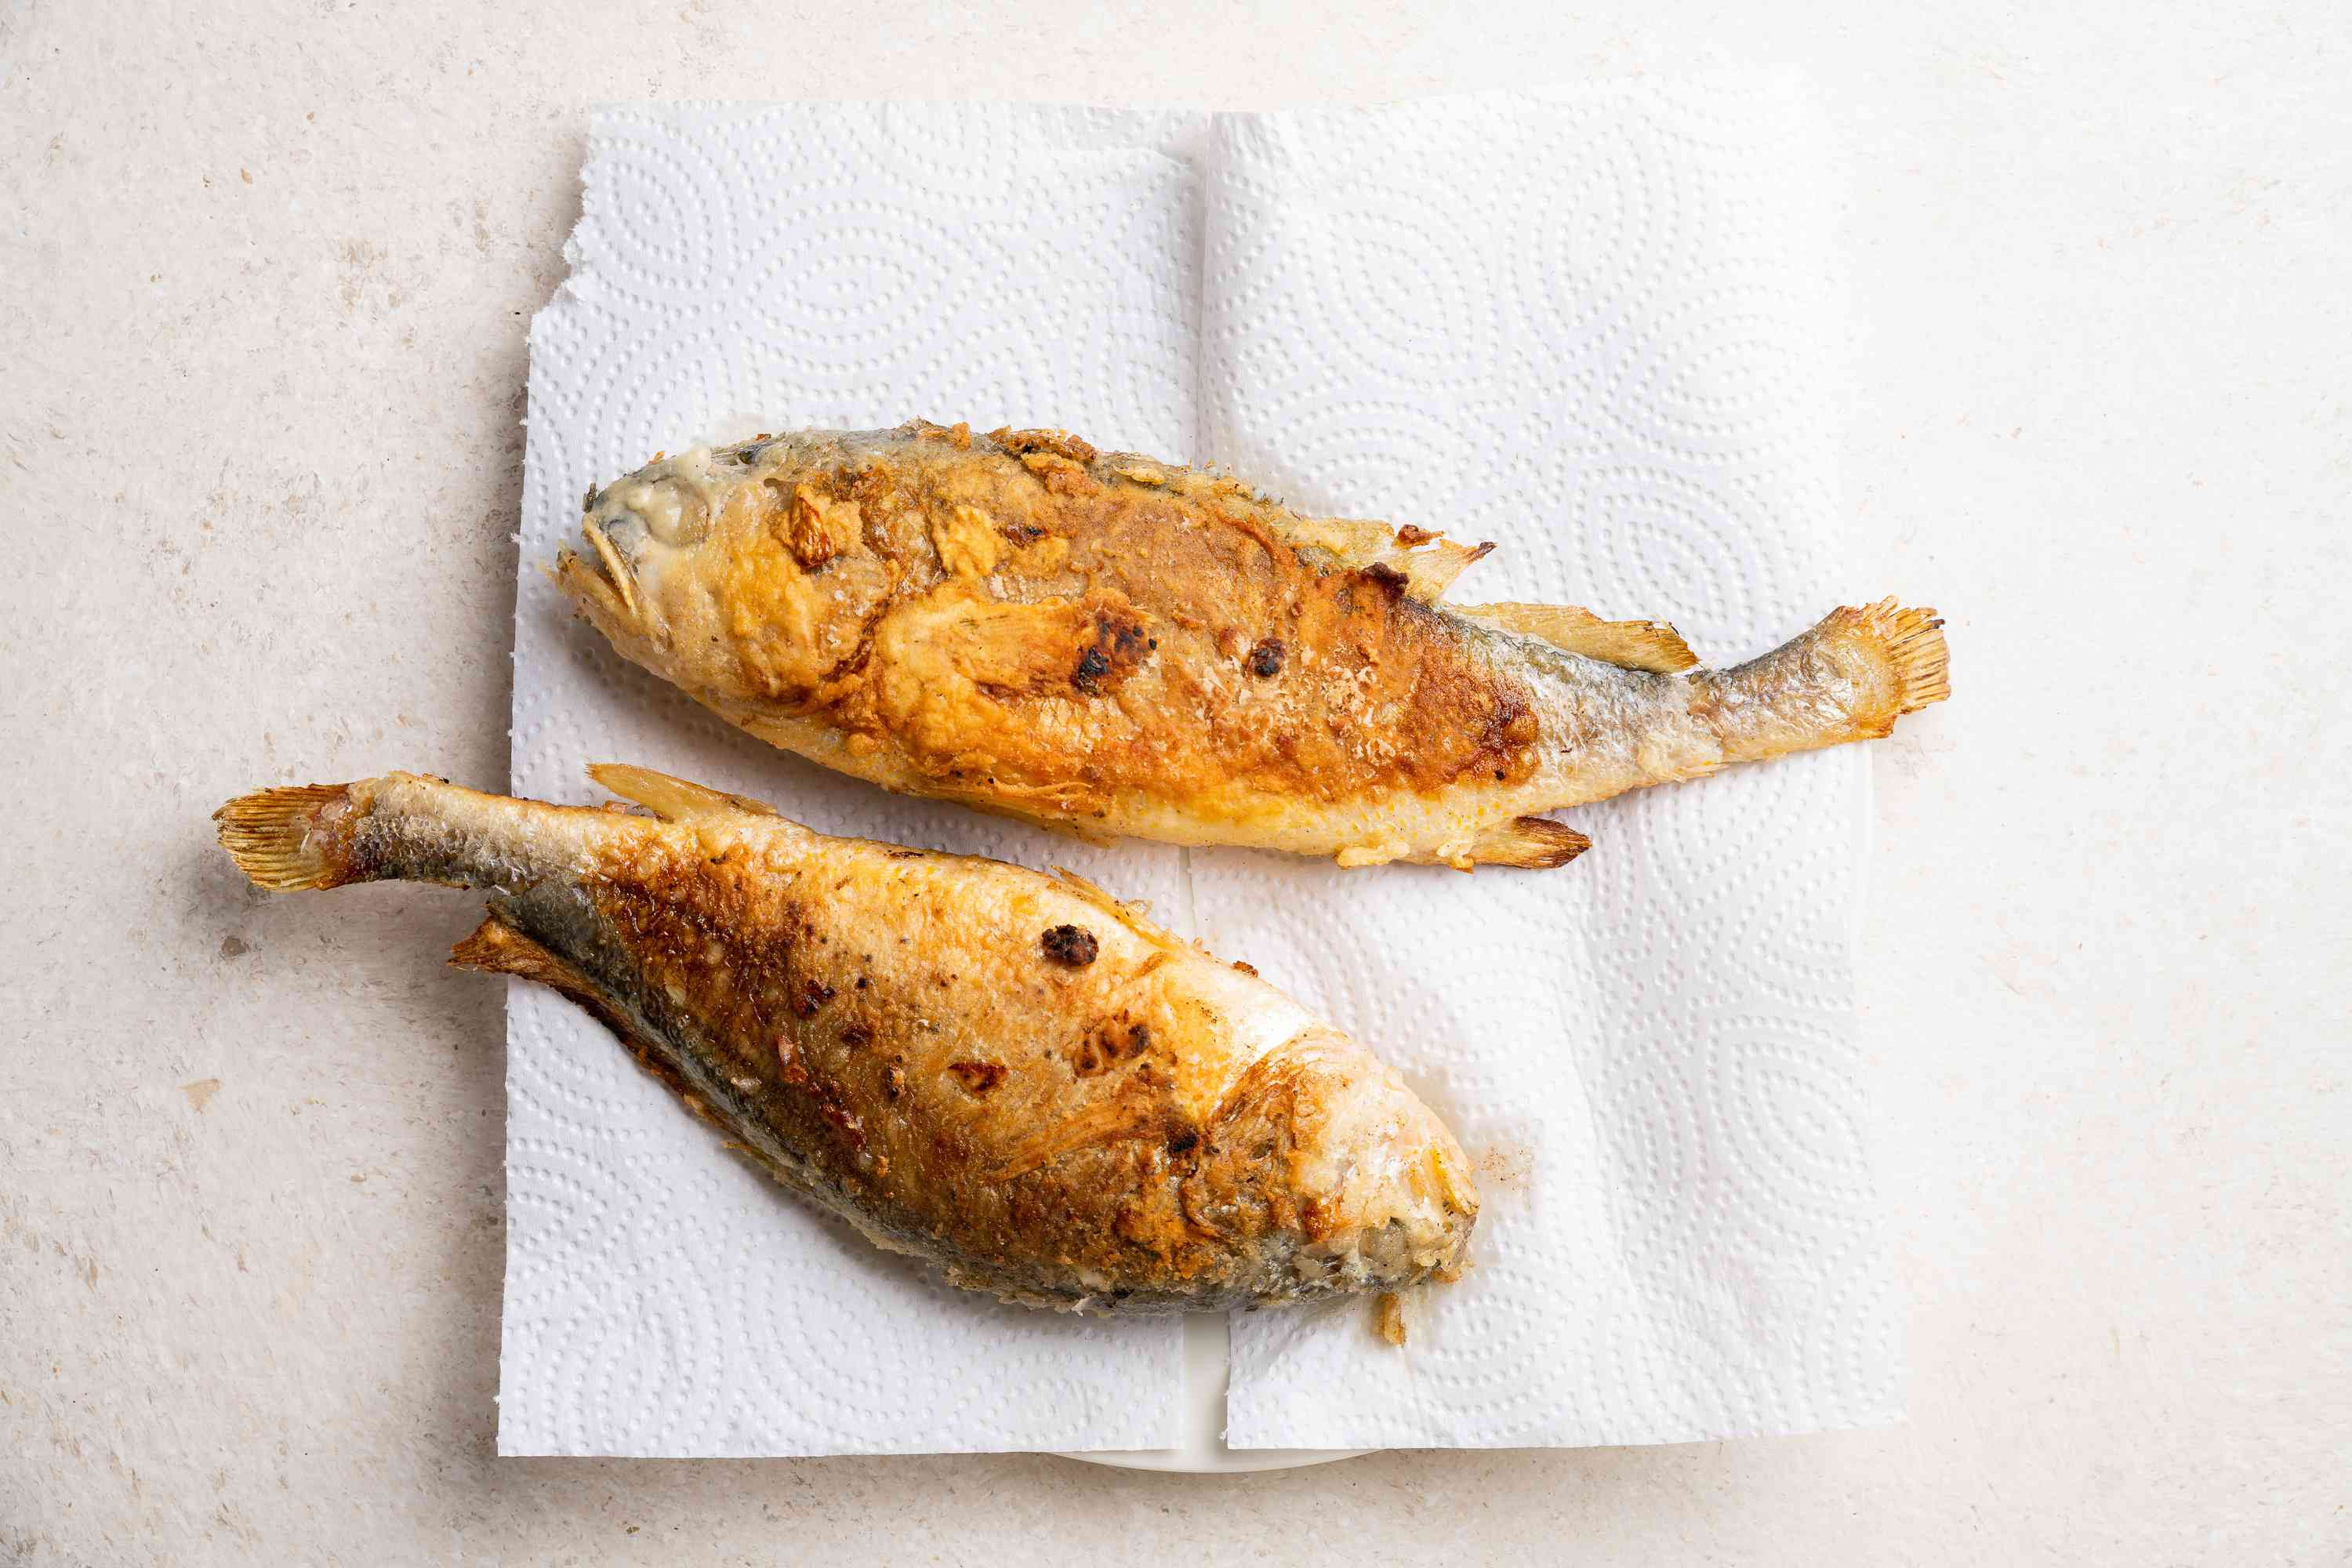 Korean Pan-Fried Whole Fish on a paper towel